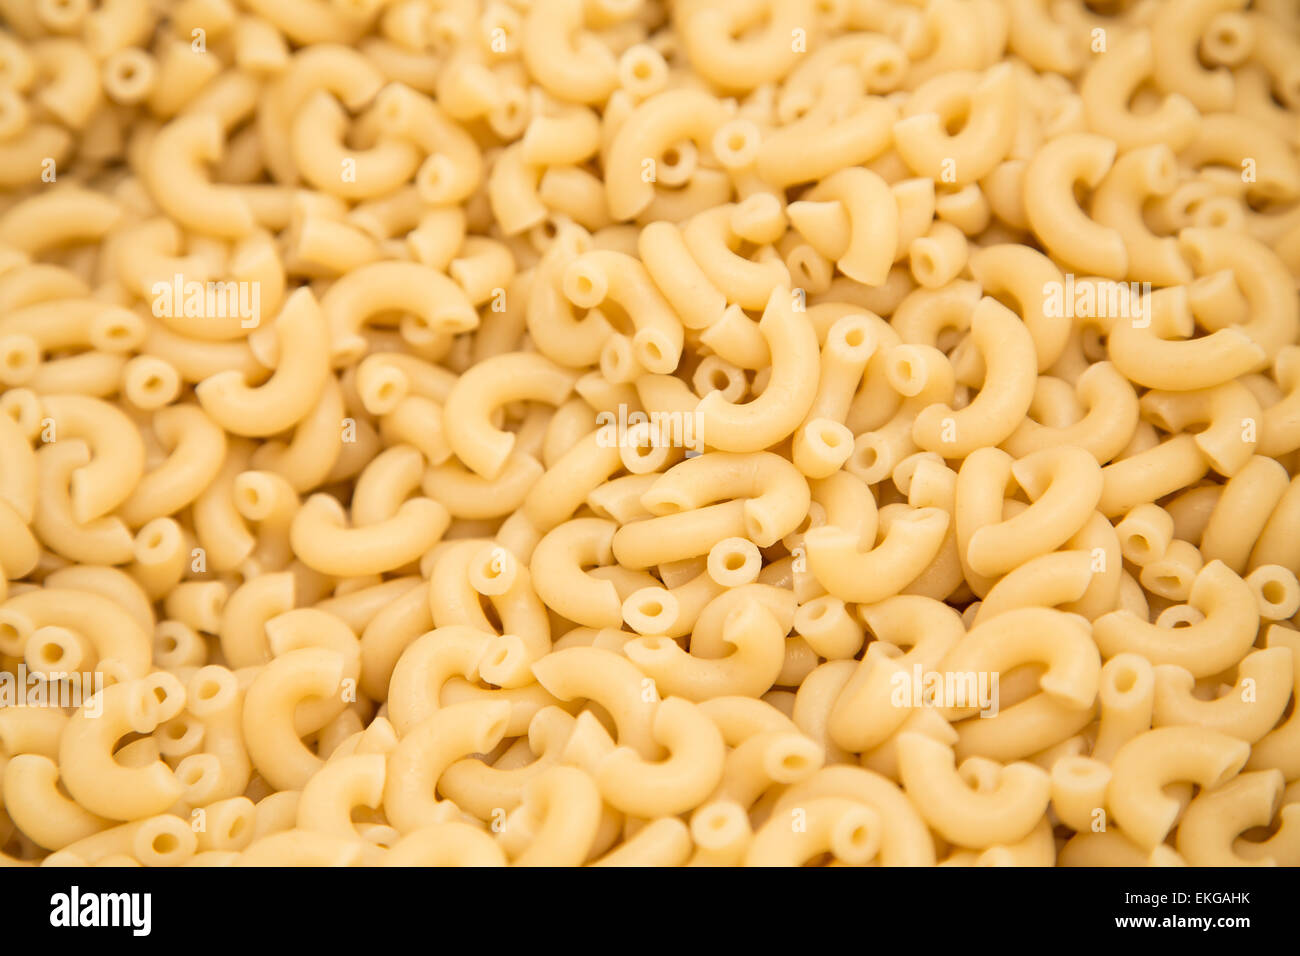 Cooked Elbow Macaroni For A Food Background